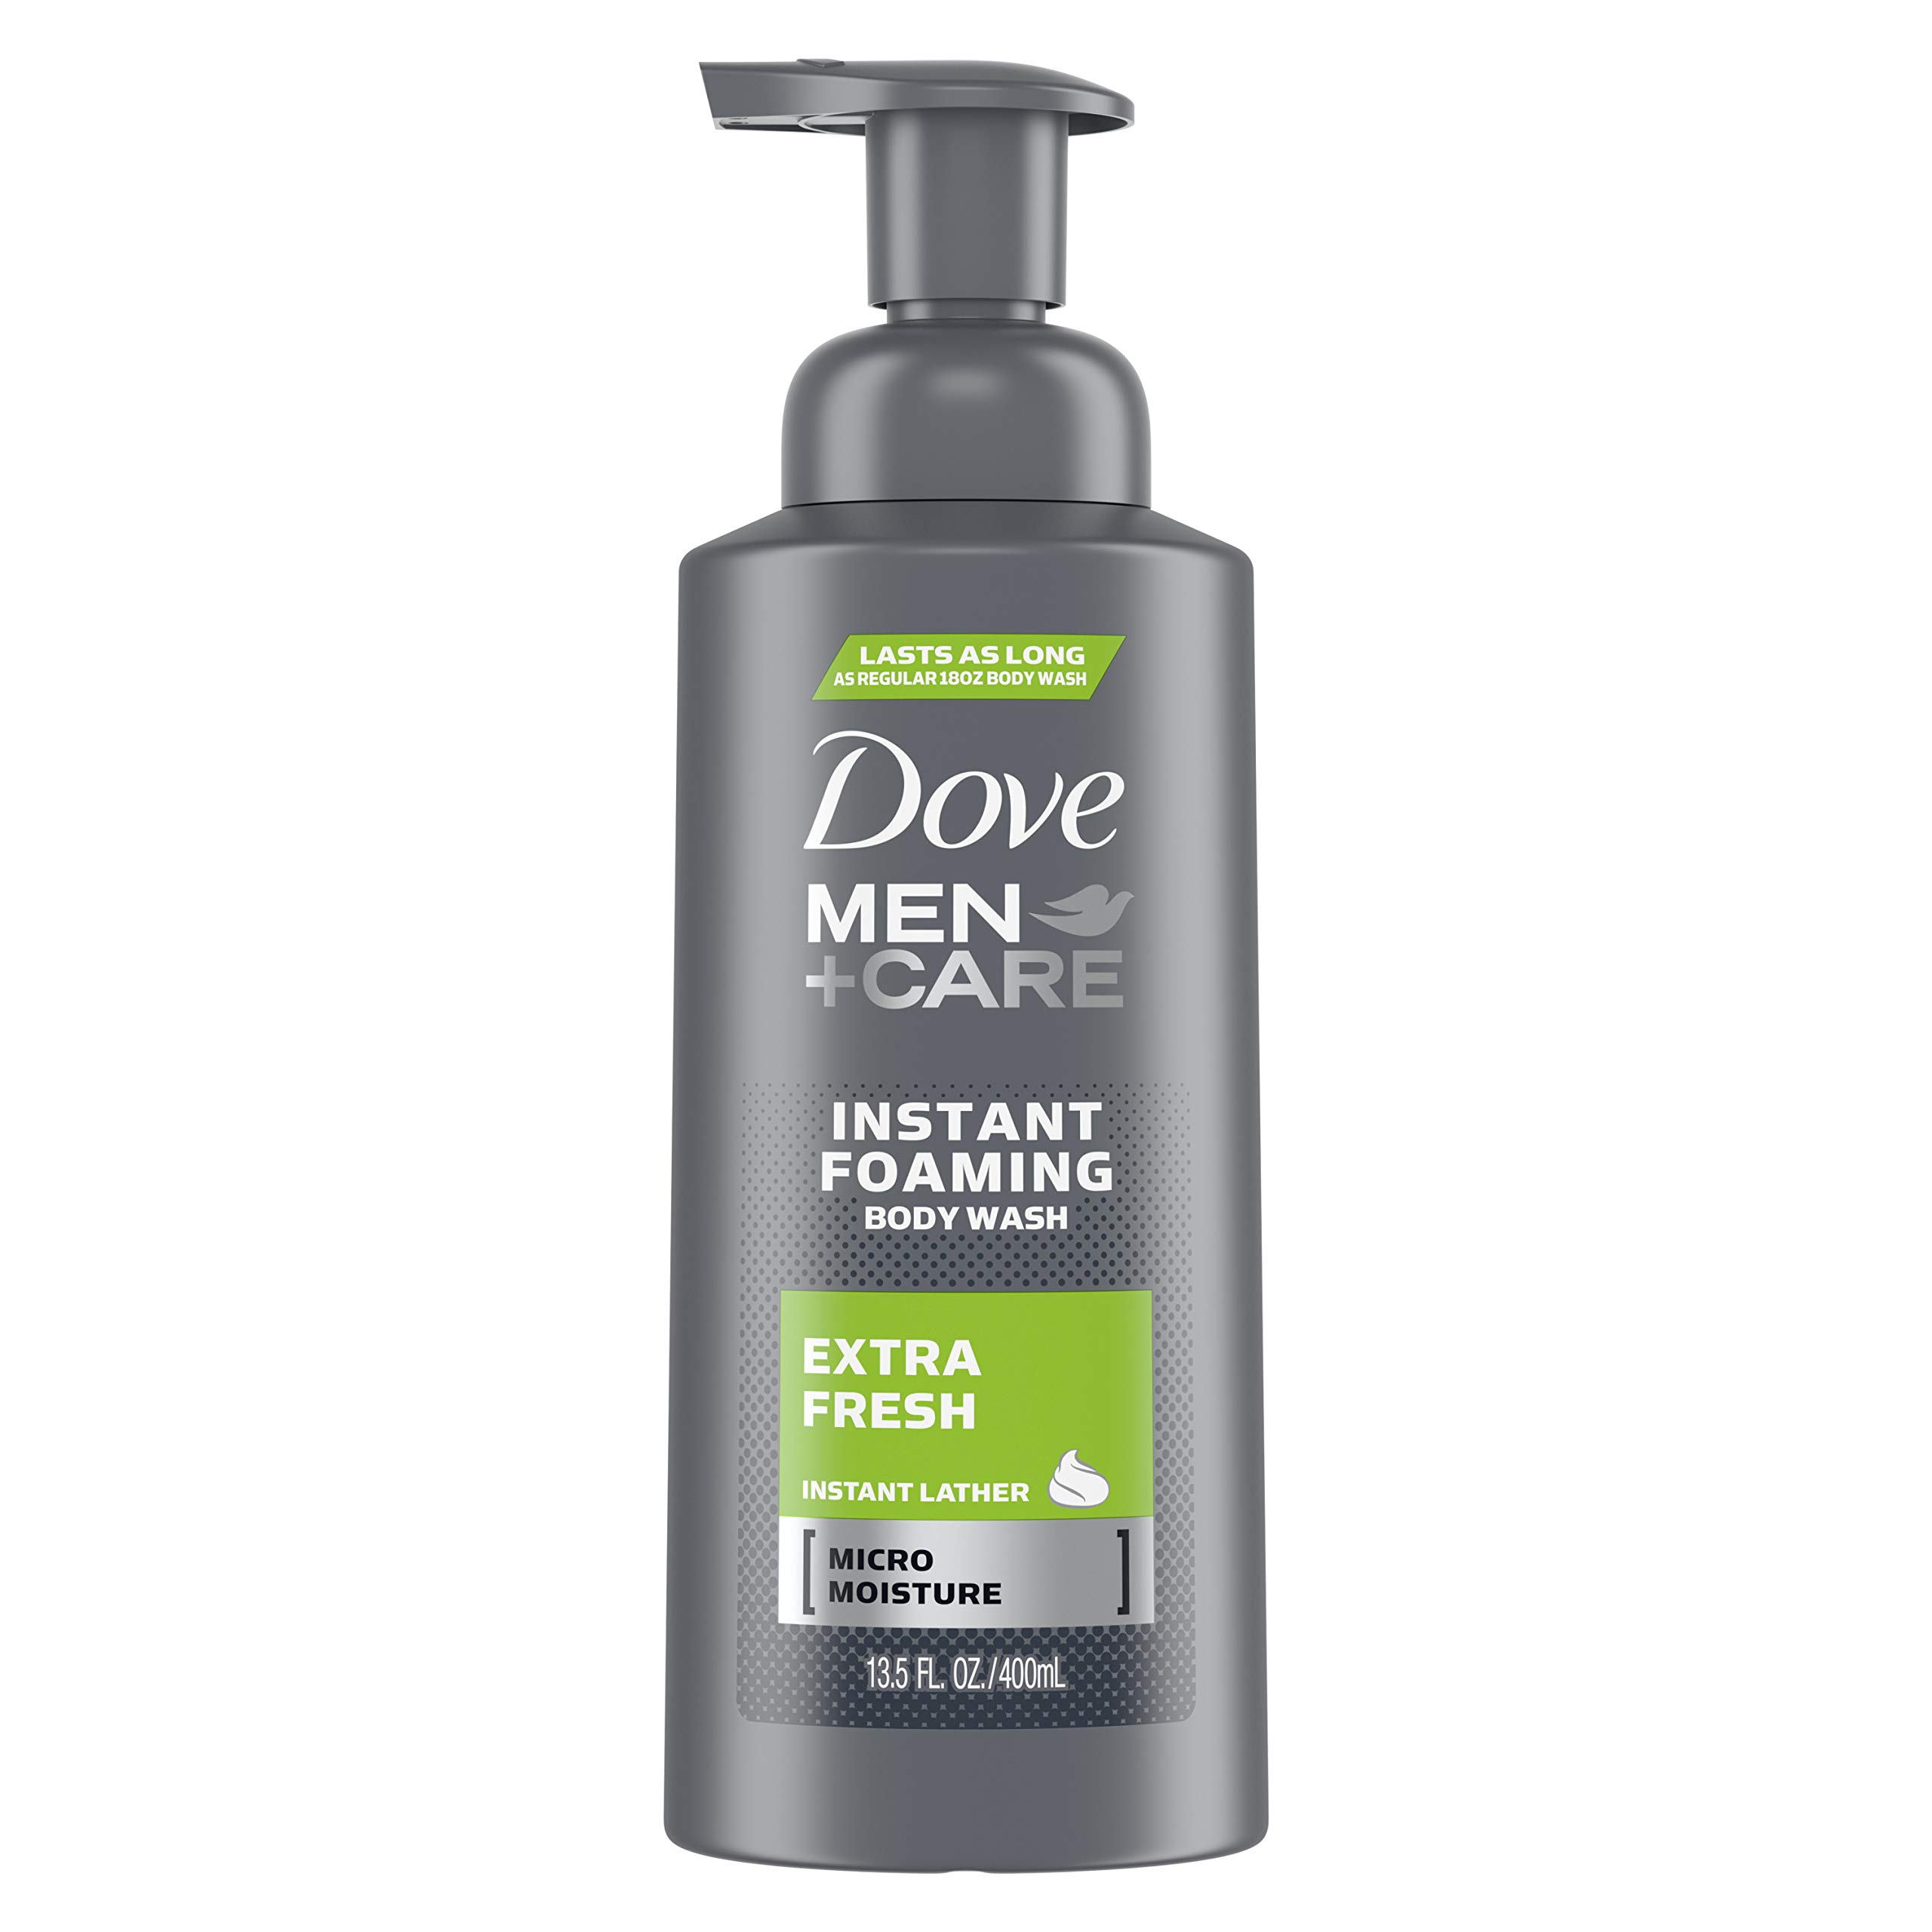 Dove Men+Care  Foaming Body Wash to Hydrate Skin Extra Fresh Effectively Washes Away Bacteria While Nourishing Your Skin 13.5 oz